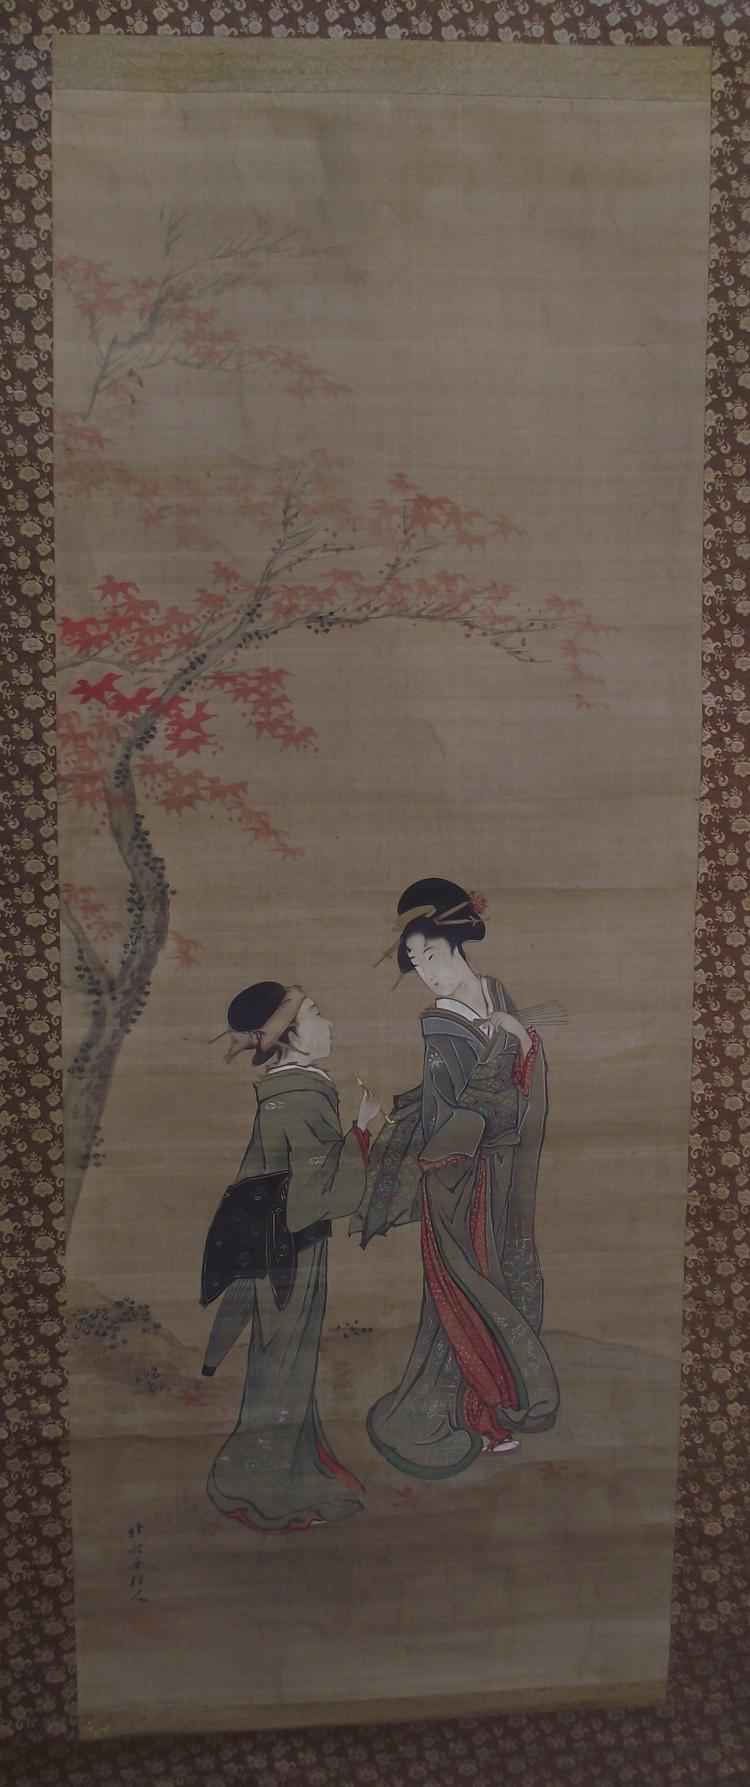 Antique Japanese scroll painting on silk - signed Hokusai